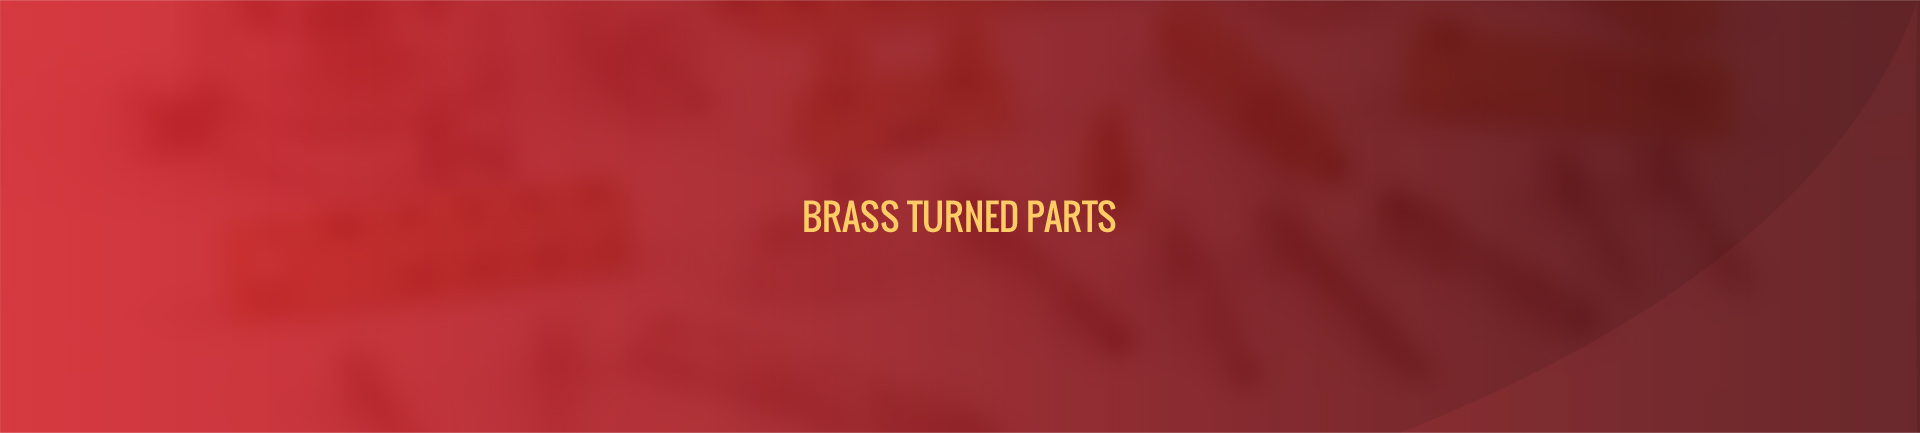 brass-turned-parts-banner